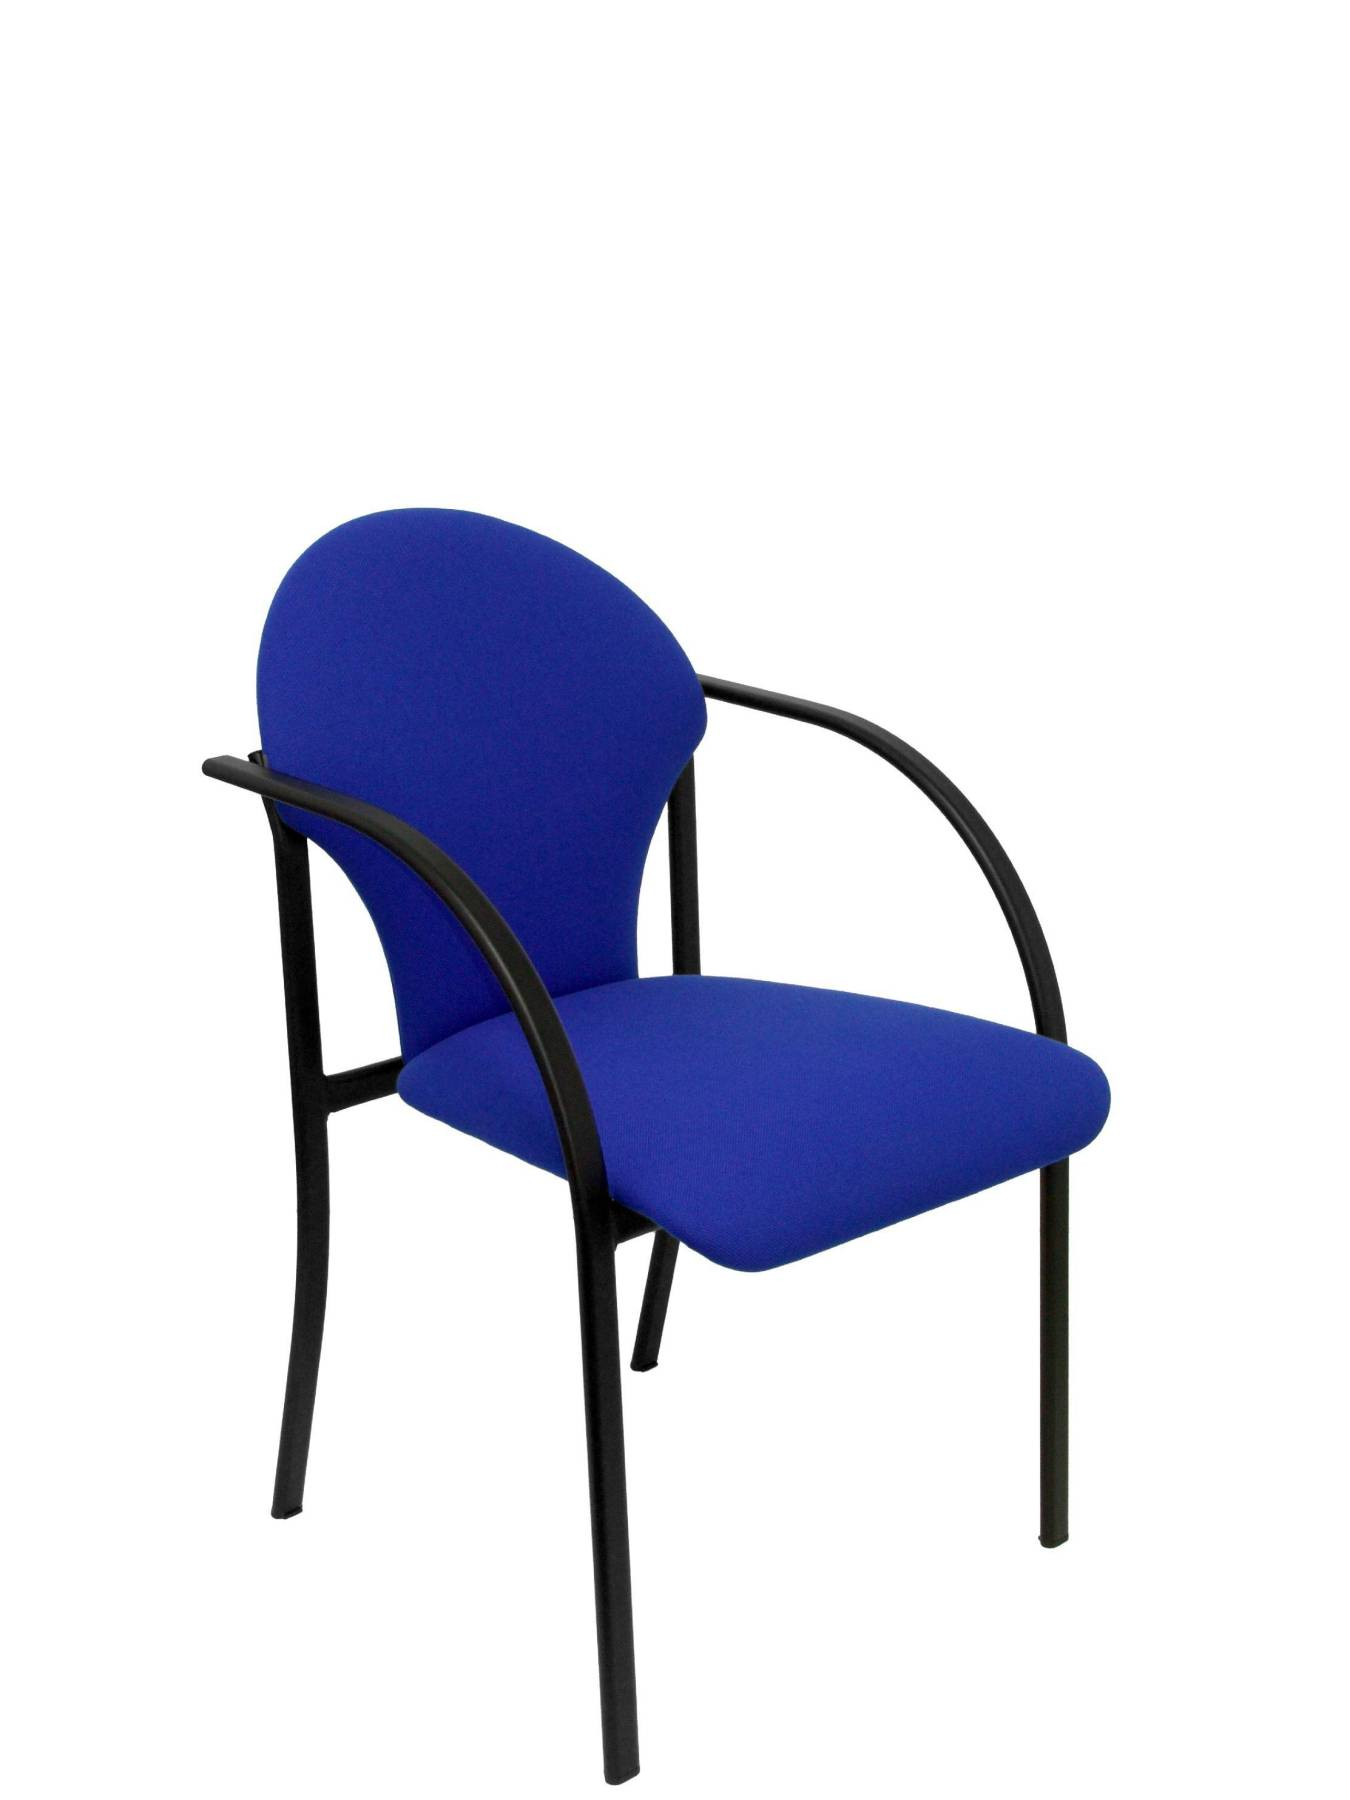 Visitor Chair Desk Ergonomic With Arms Fixed Incorporated, Stackable And Structure In Color Black-up Seat And Backstop Ta